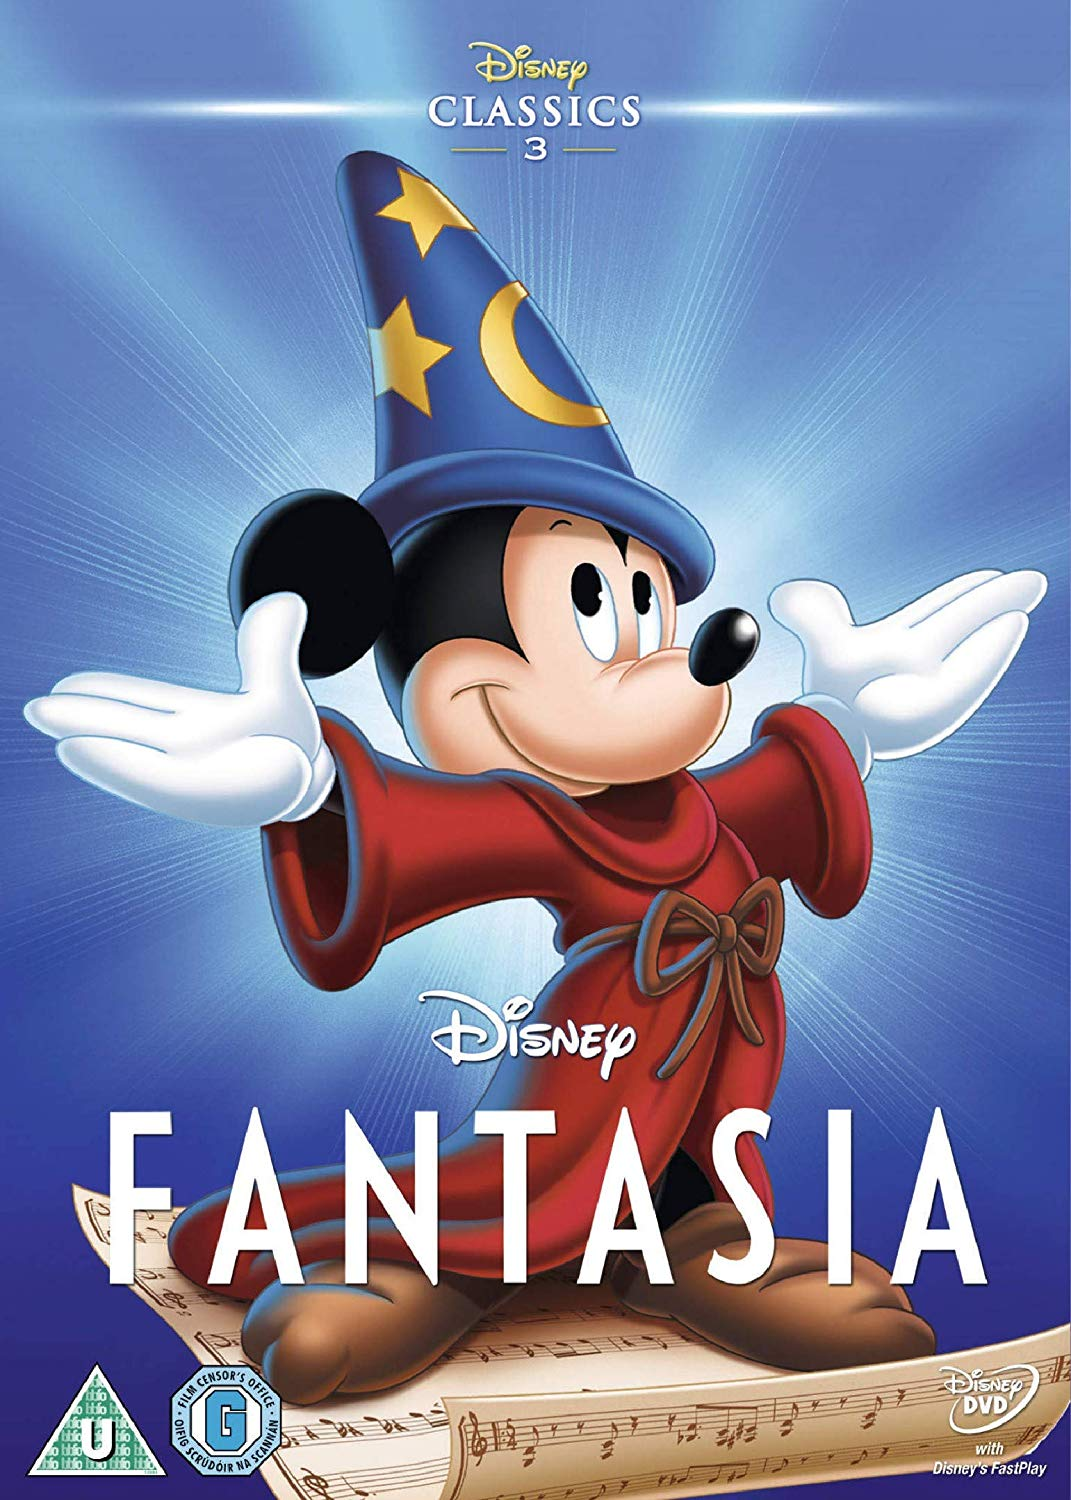 FANTASIA (MINI IN MALL AMUSEMENT PARK) AND IN MALL WATER PARK Franchise